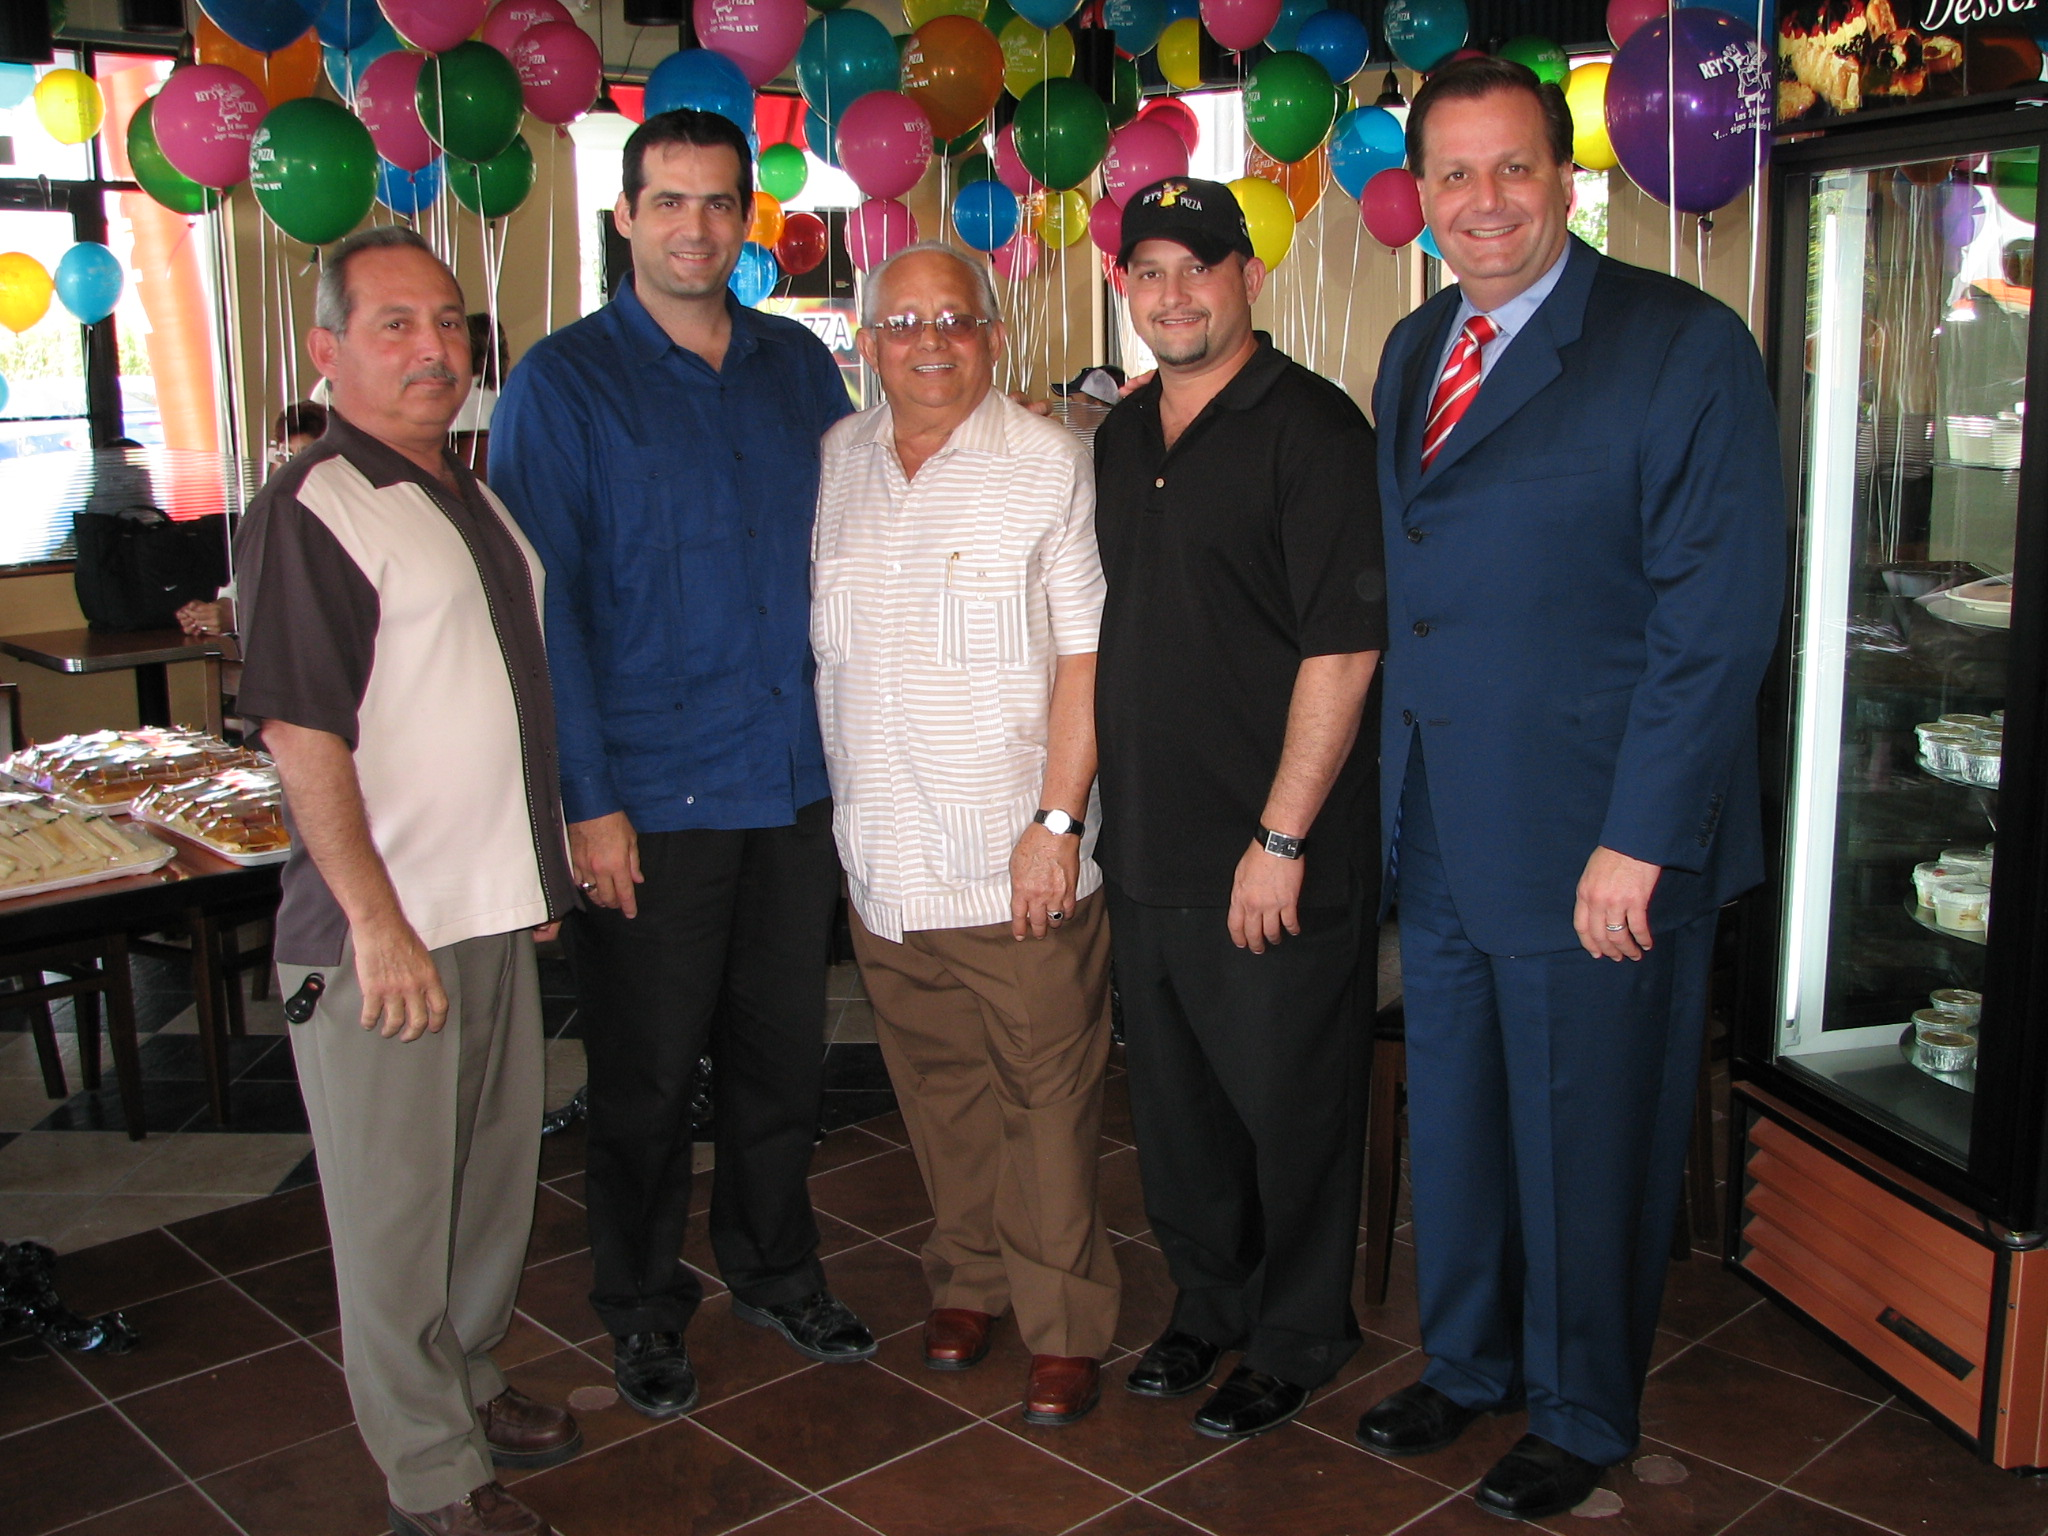 father son 2 hialeah mayors.JPG